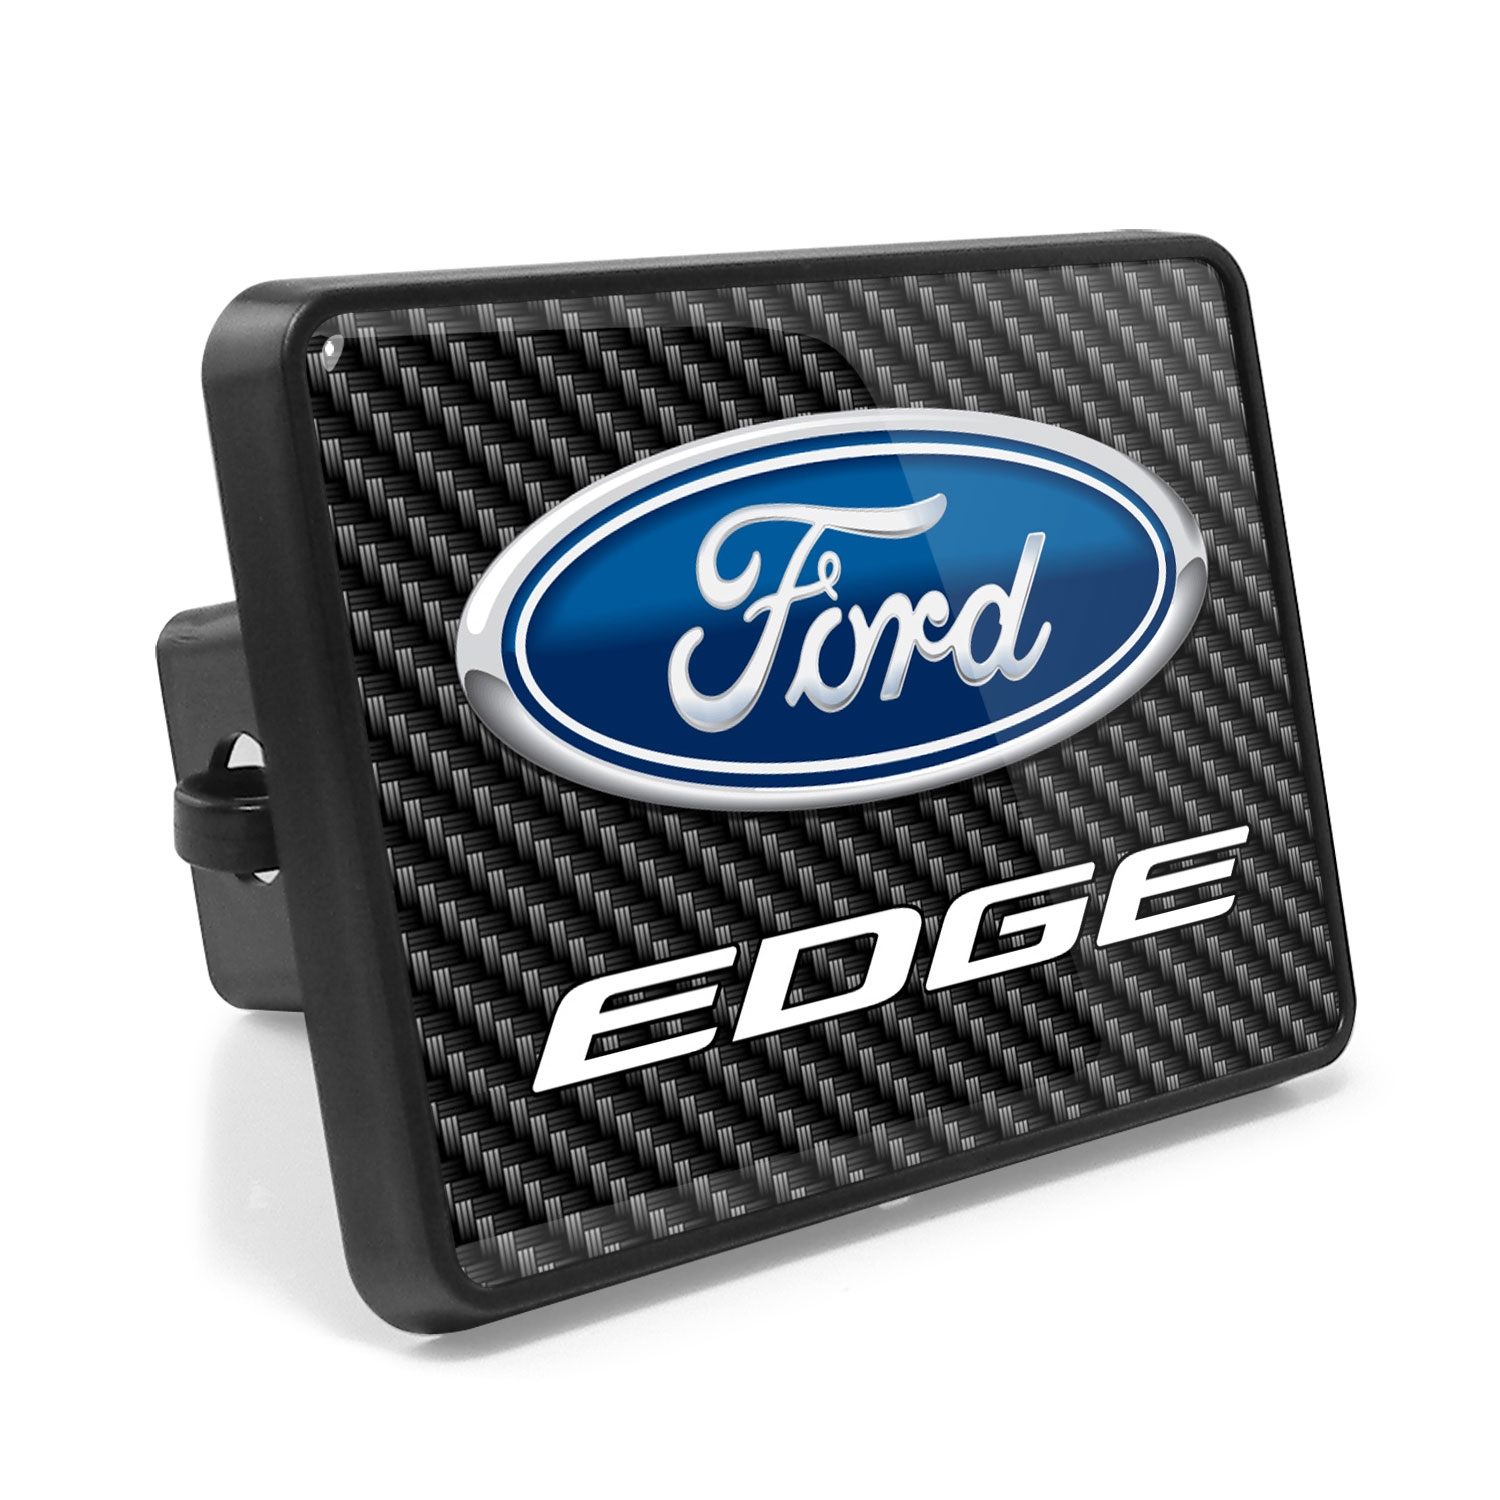 Ford Edge Carbon Fiber Look UV Graphic Metal Plate on ABS Plastic 2 inch Tow Hitch Cover